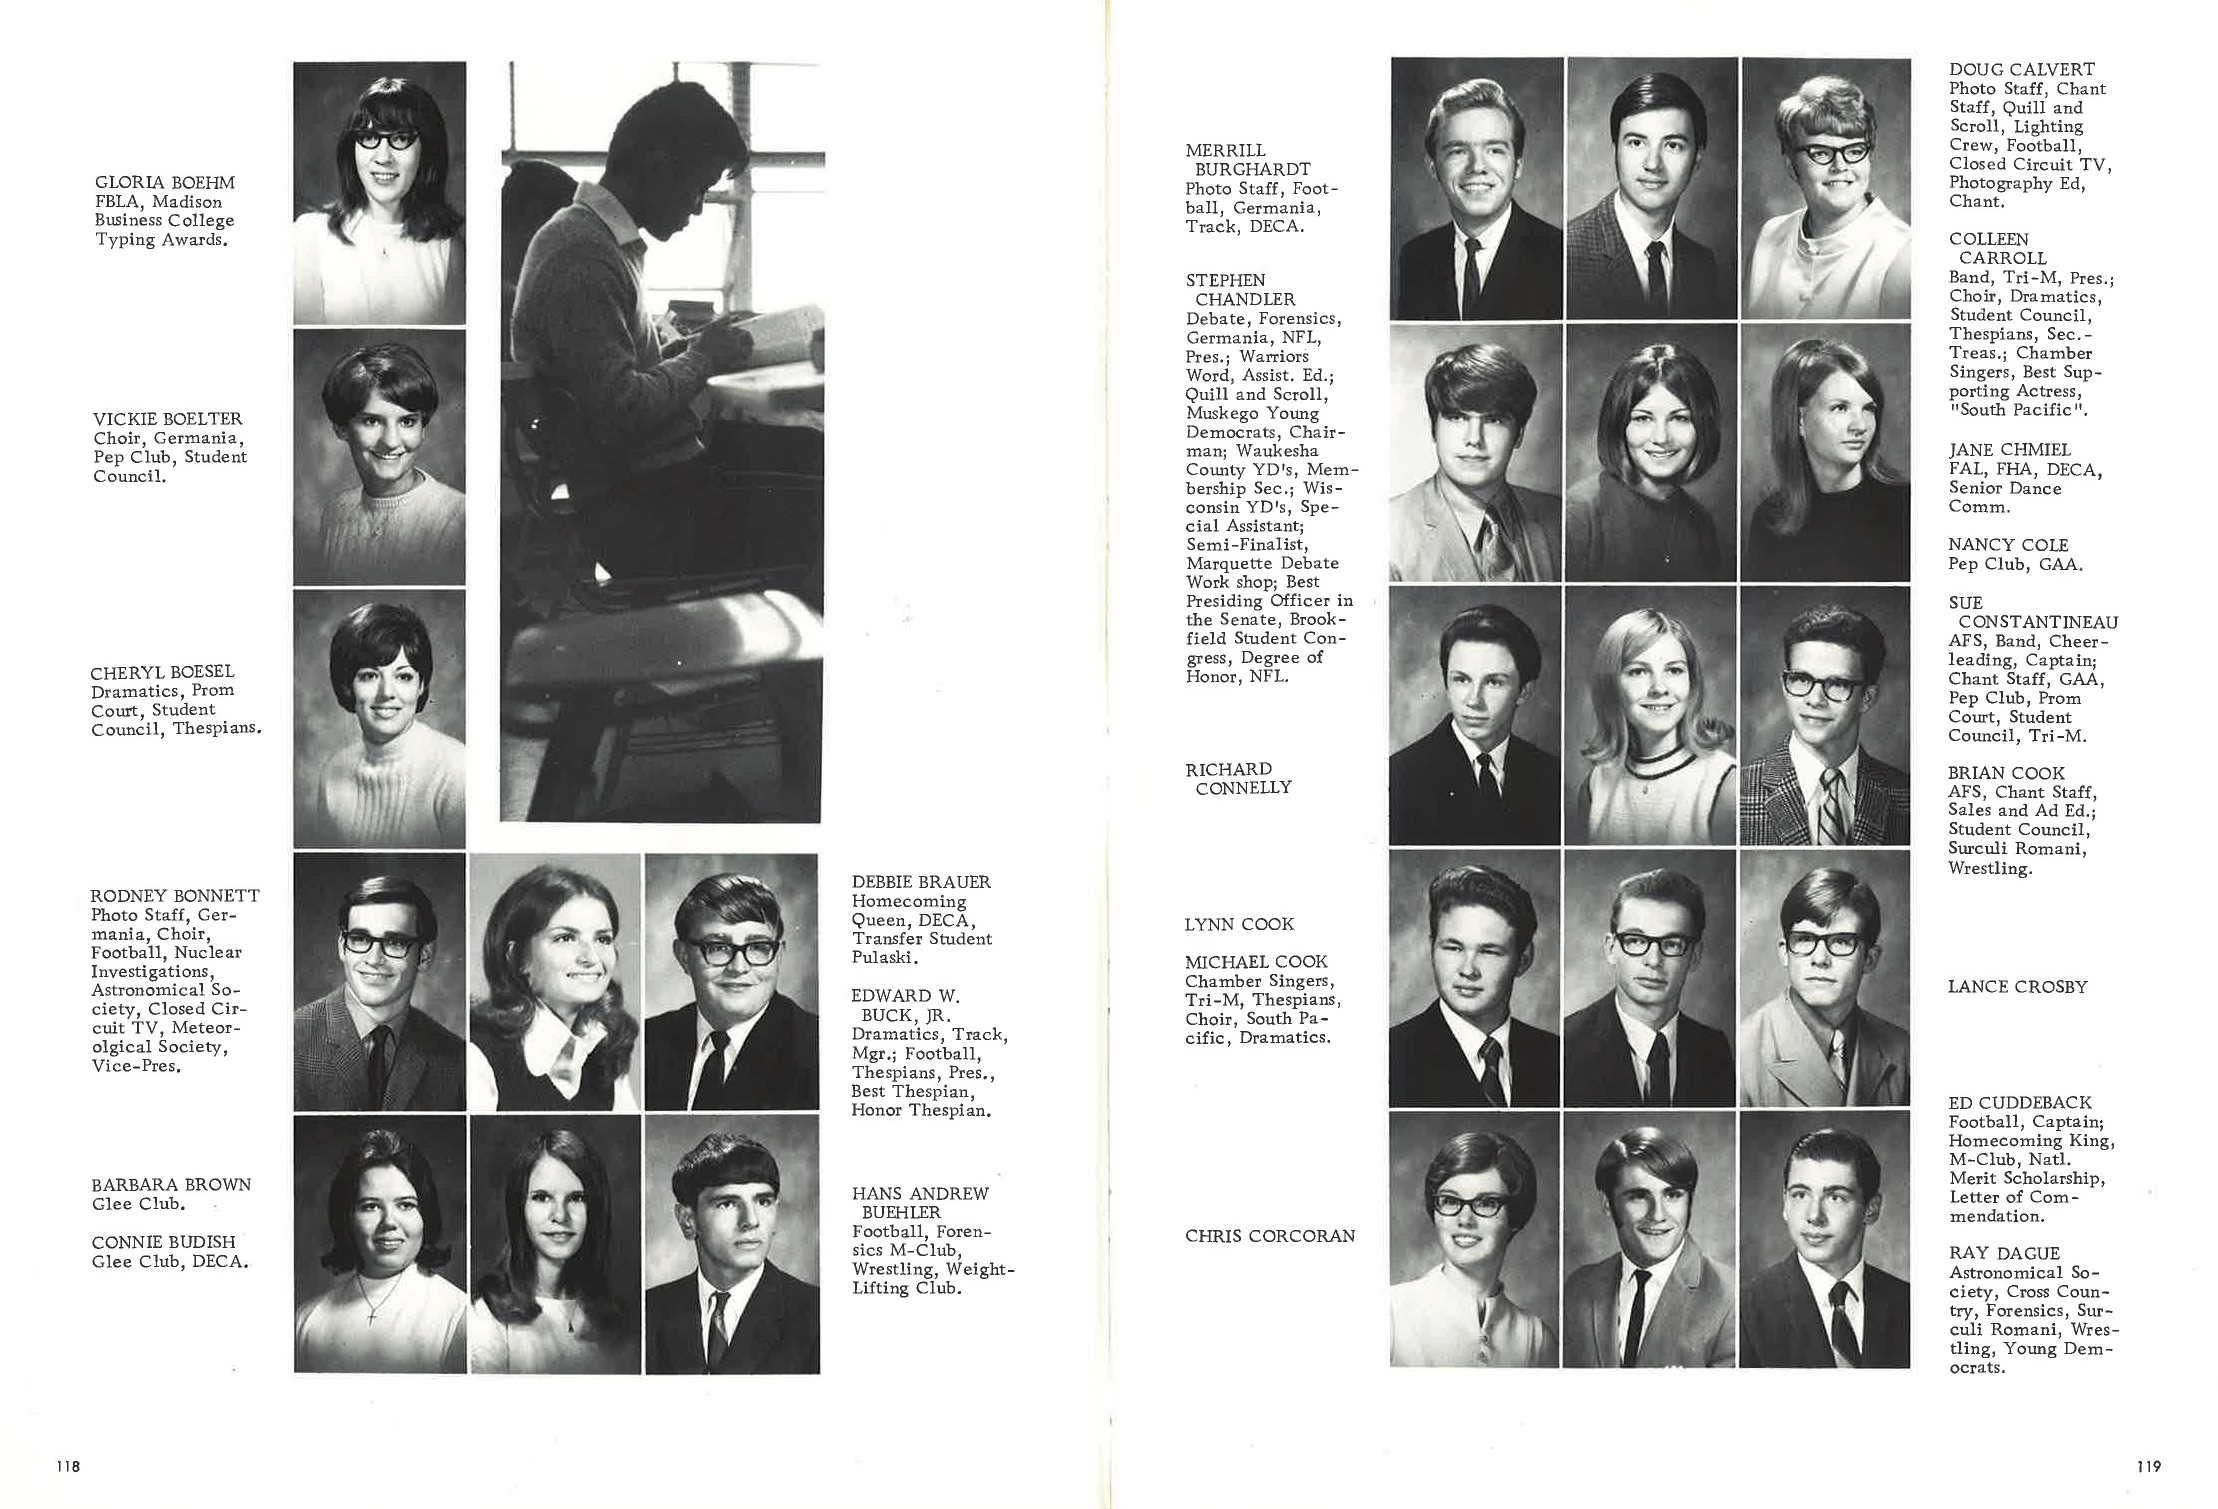 1970_Yearbook_118-119.jpg